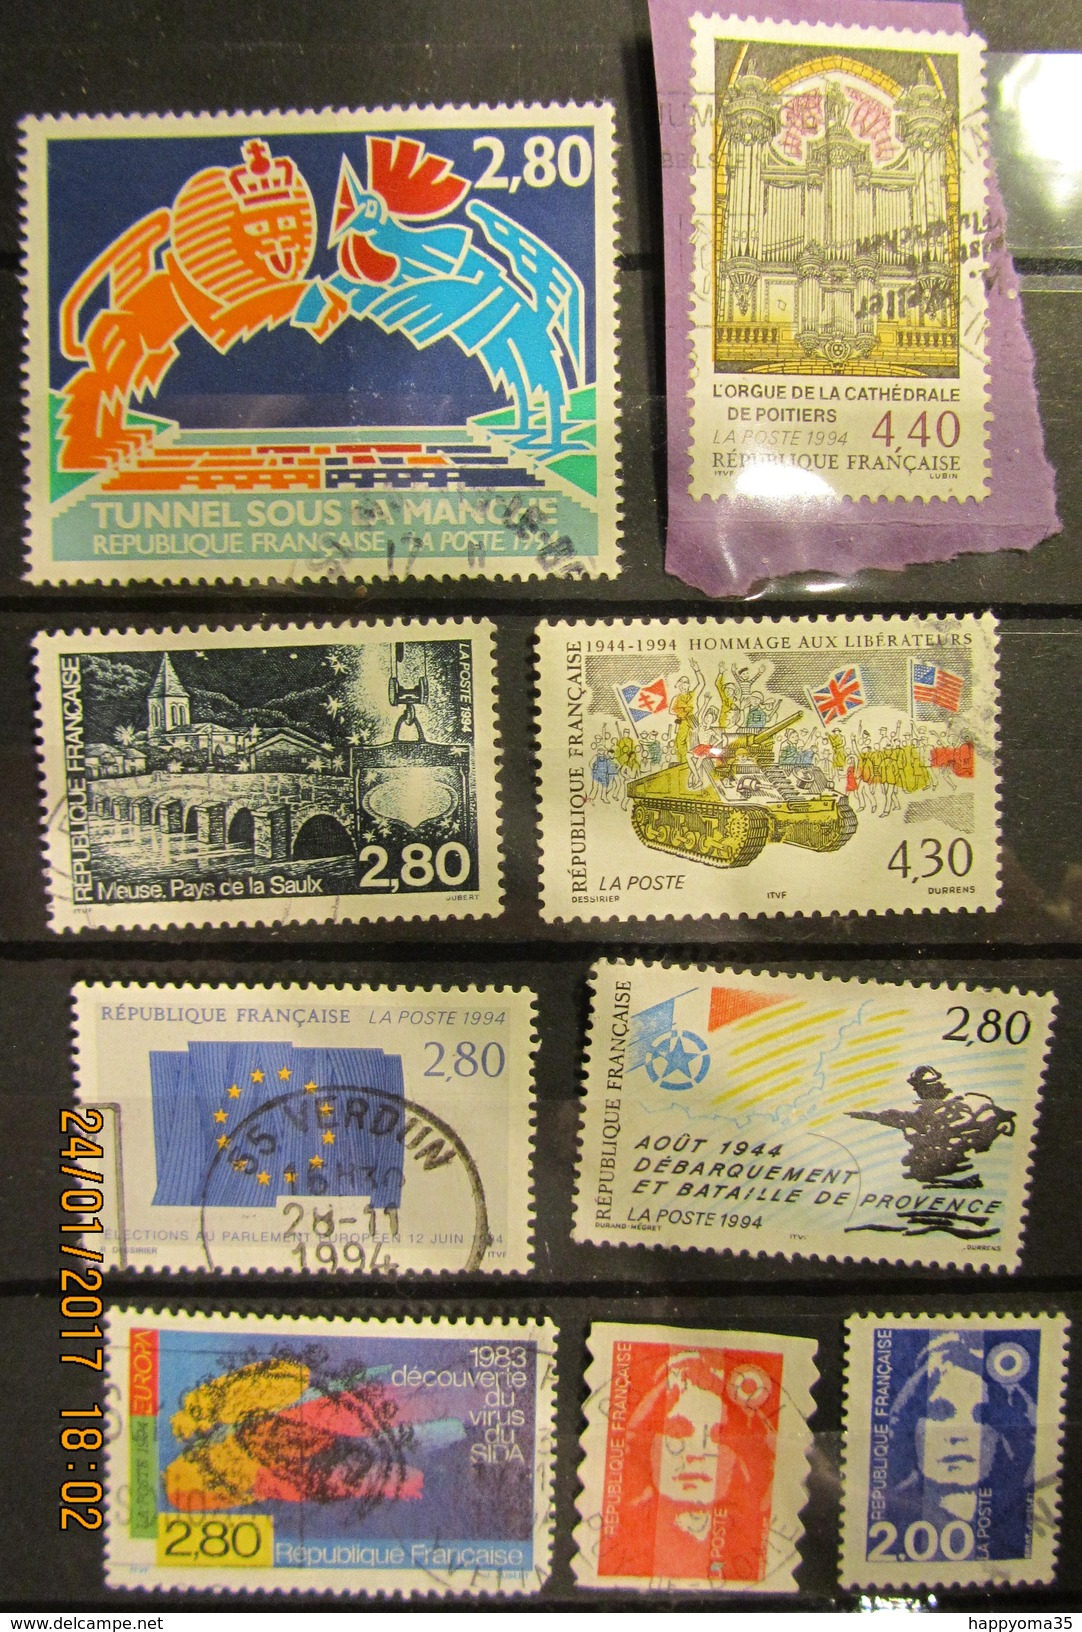 Frankreich Mix Set Stamps Of 1994 France Francia Frankrijk Small Selection Of Fine Used 880 - Frankreich